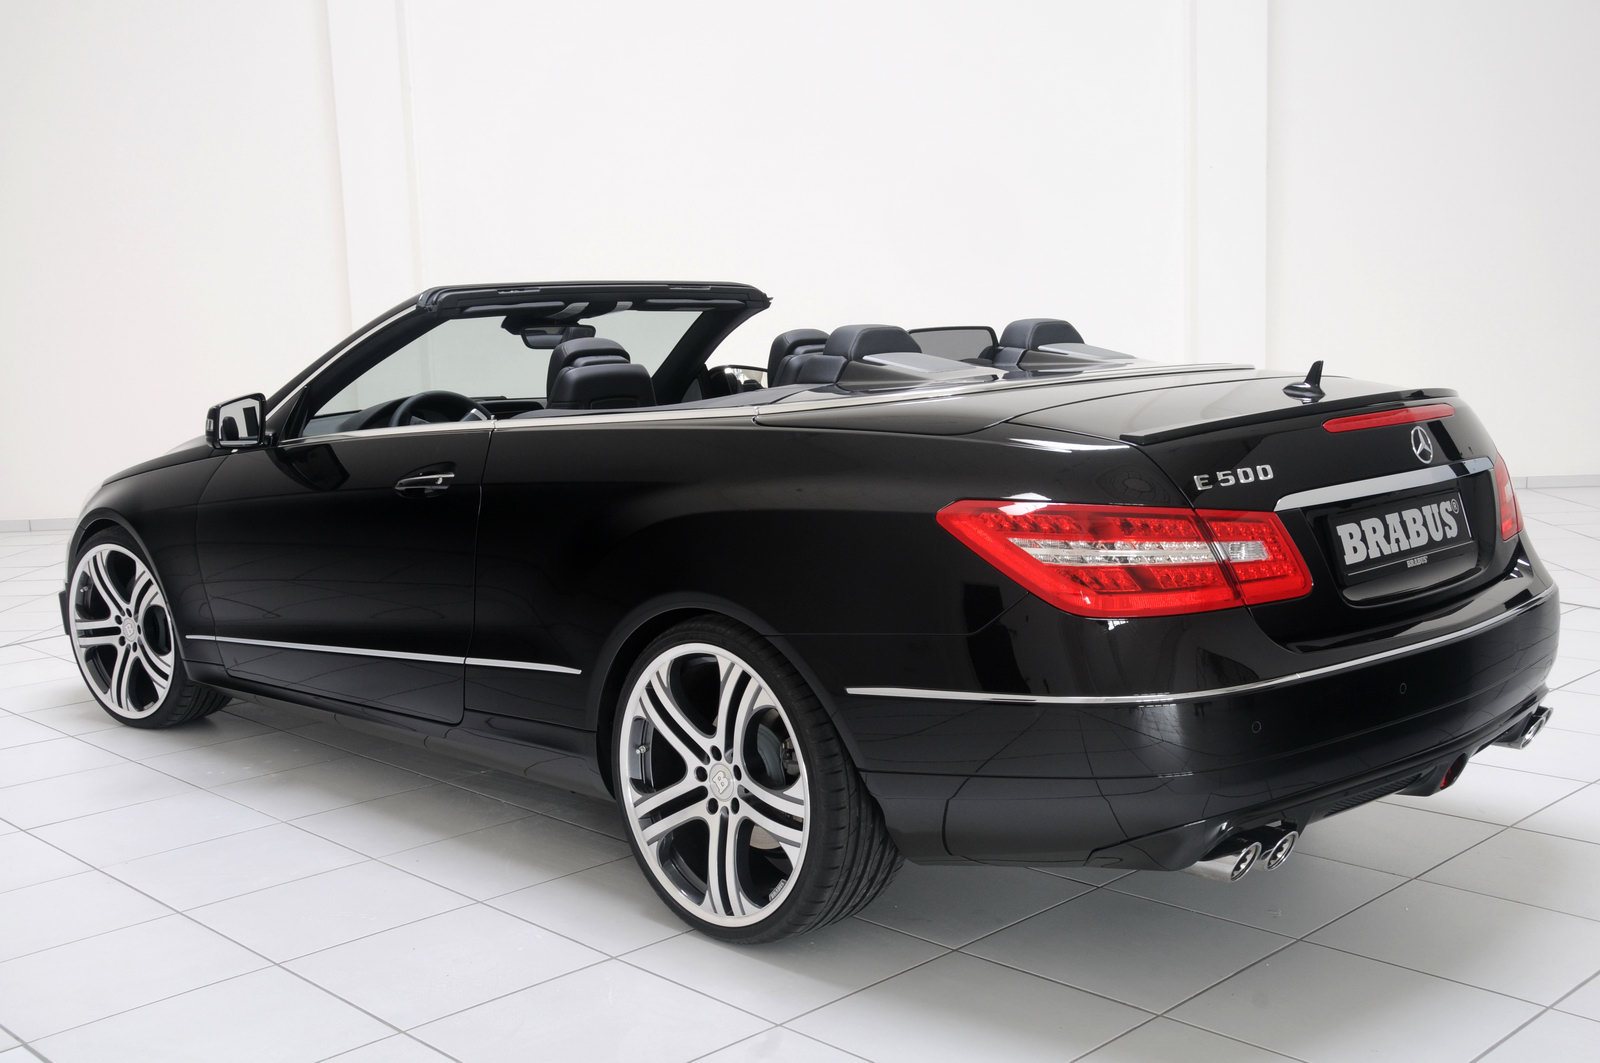 New Modified Cars Bus Does The New Mercedes Benz E Class Convertible